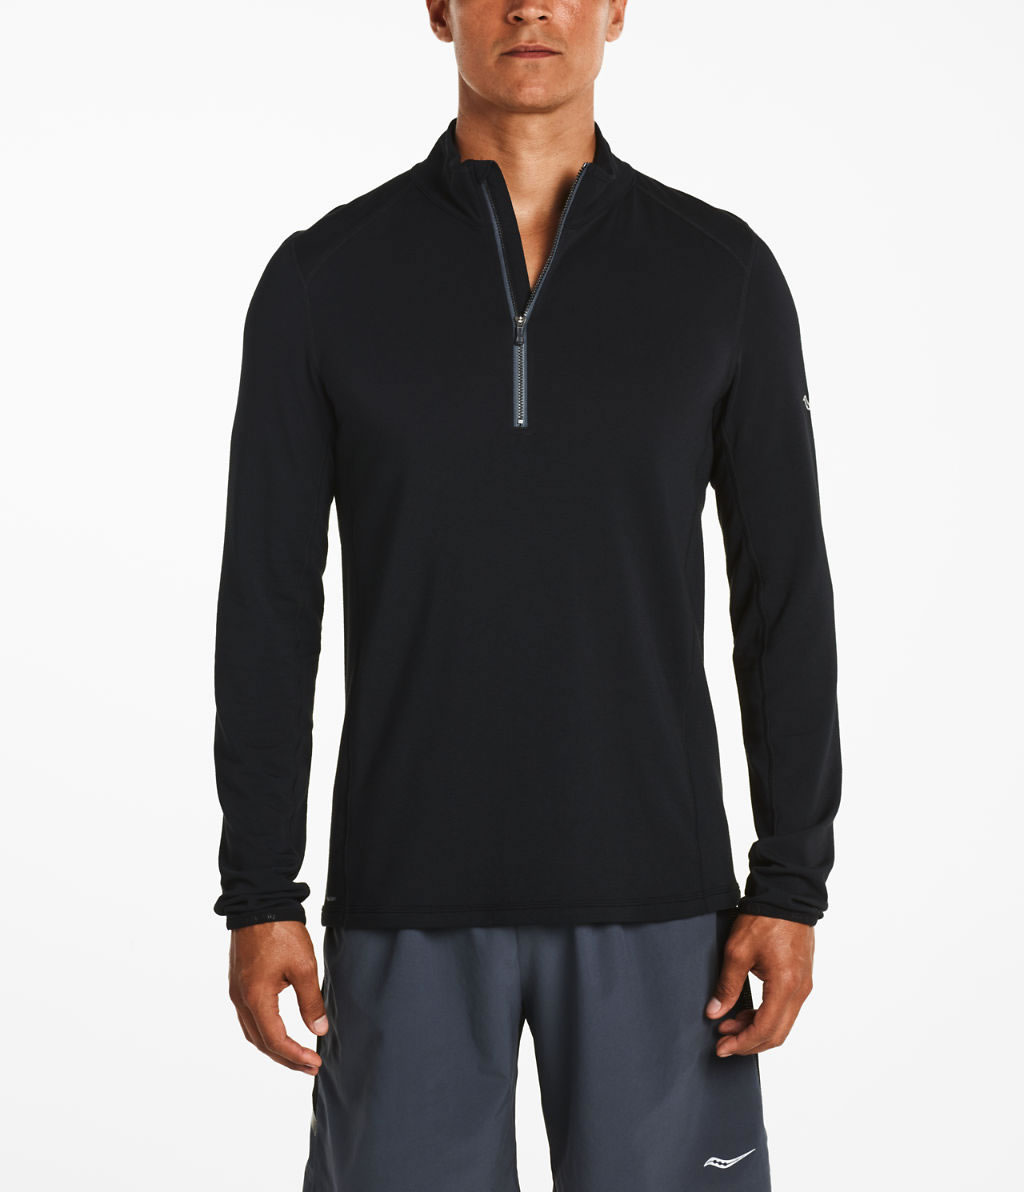 Men's long sleeve running top by Saucony